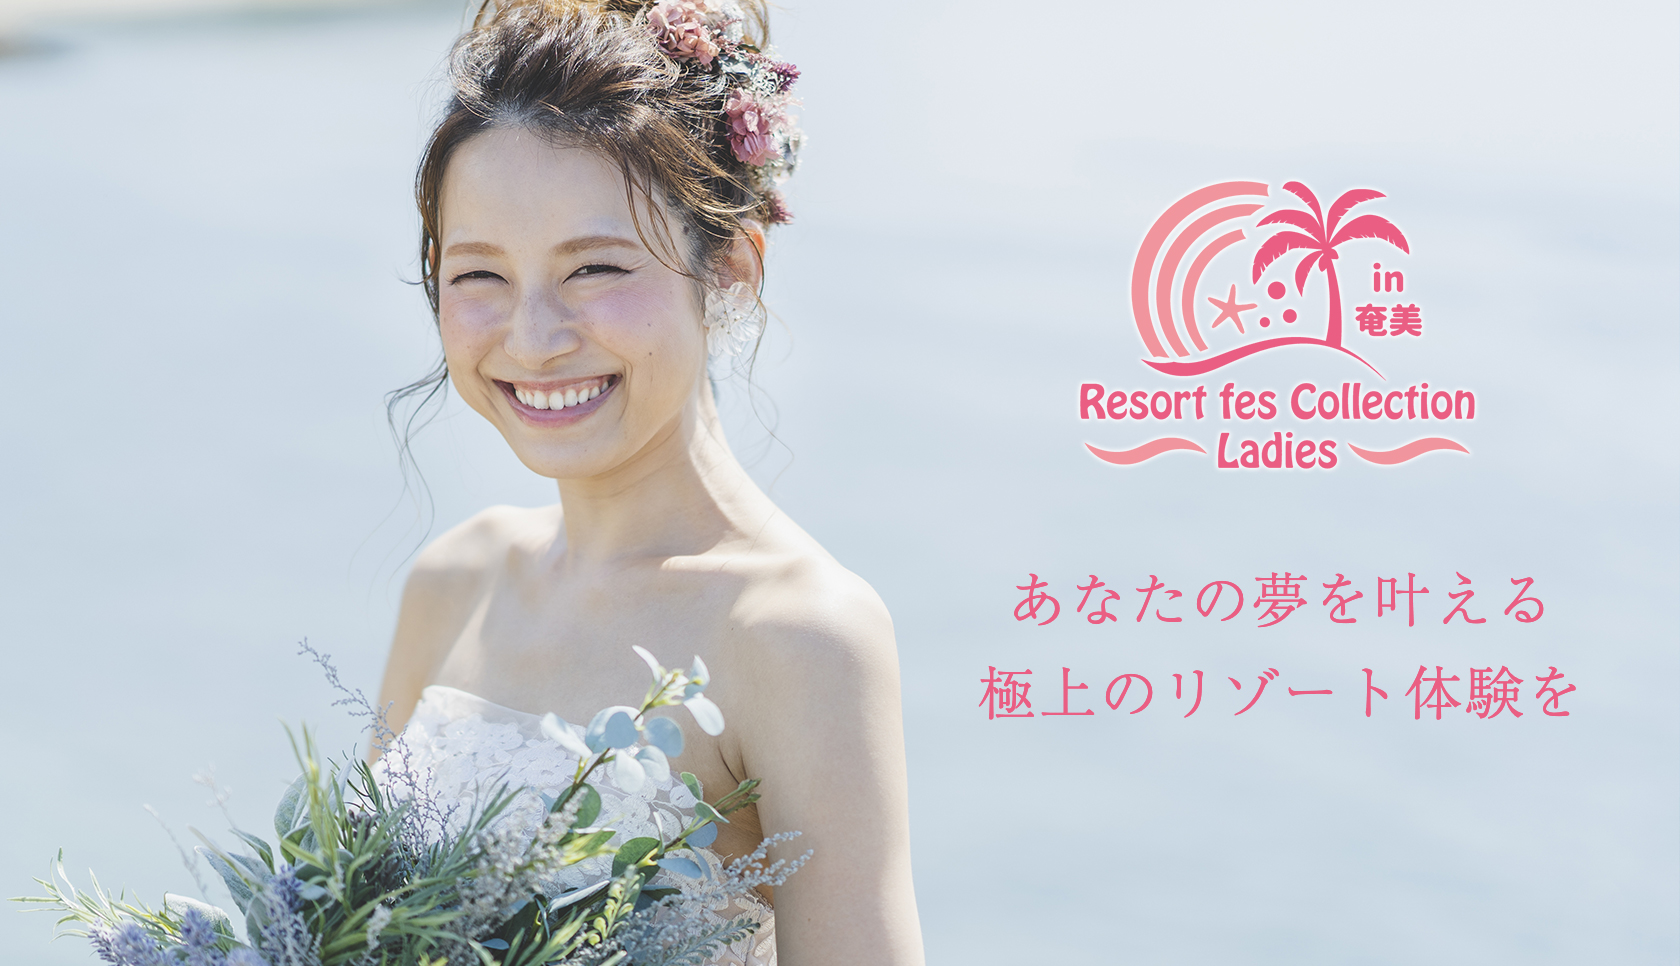 Resort fes Collection in奄美 -Ladies-メイン画像